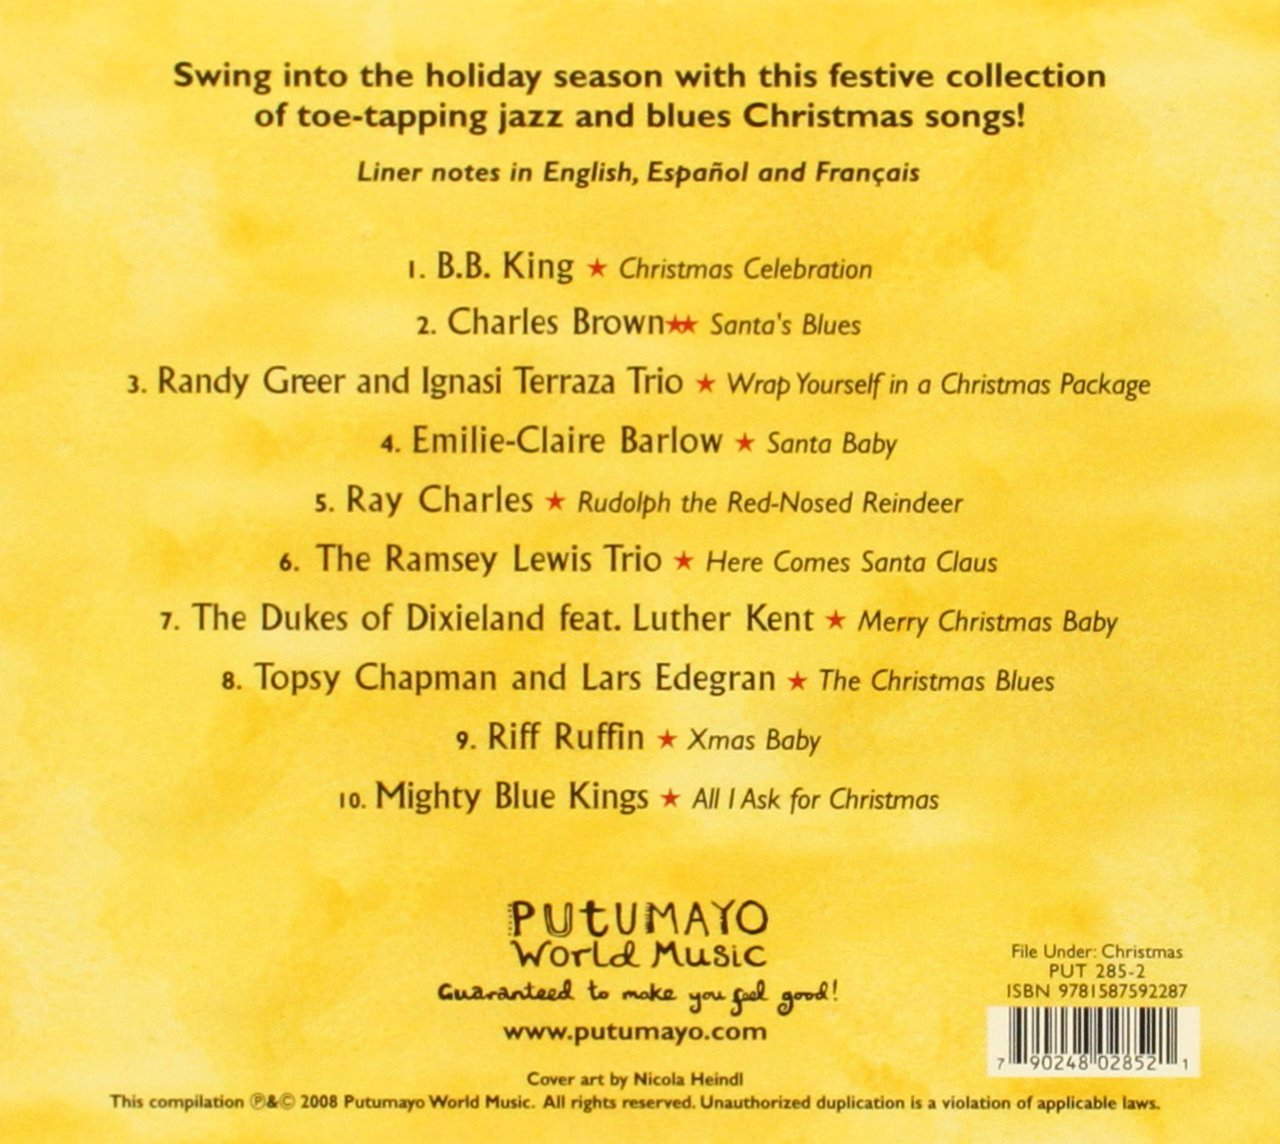 putumayo presents jazz blues christmas amazoncom music - Blues Christmas Songs